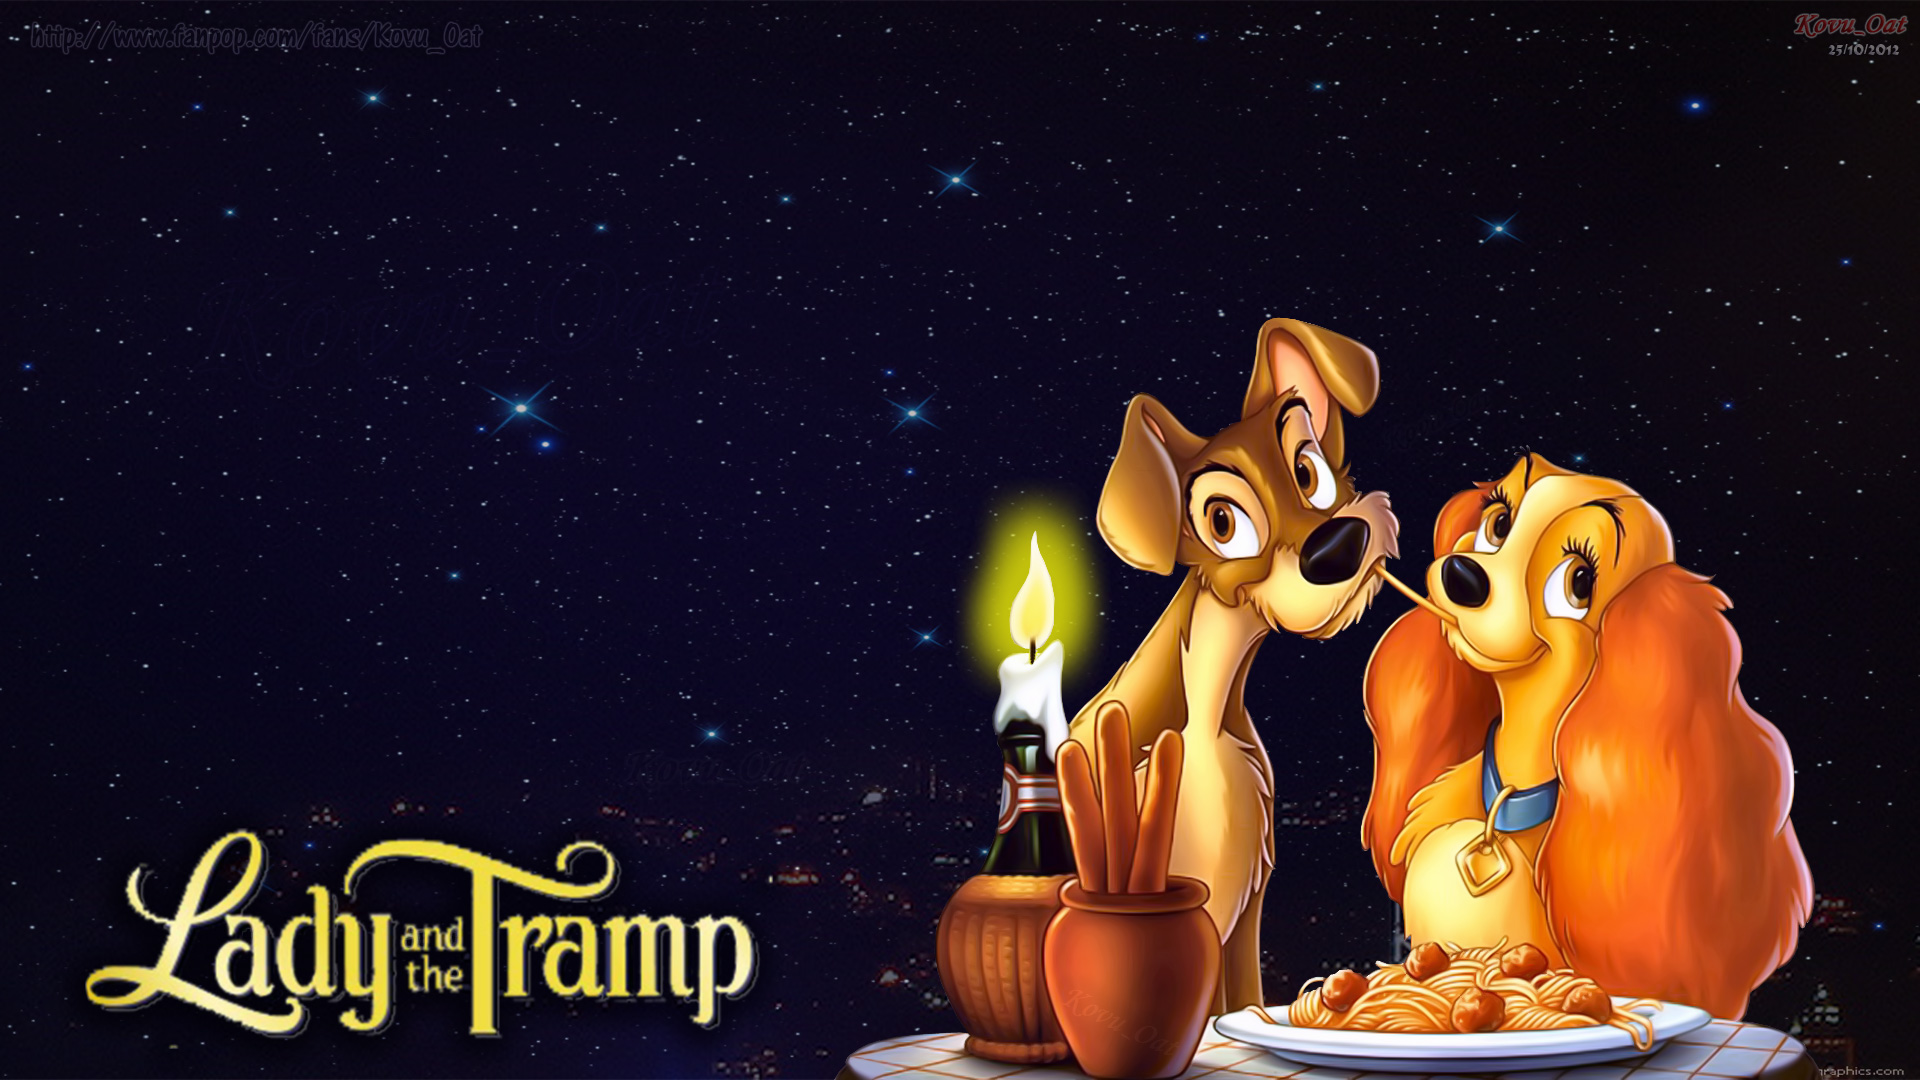 Lady And The Tramp widescreen for desktop